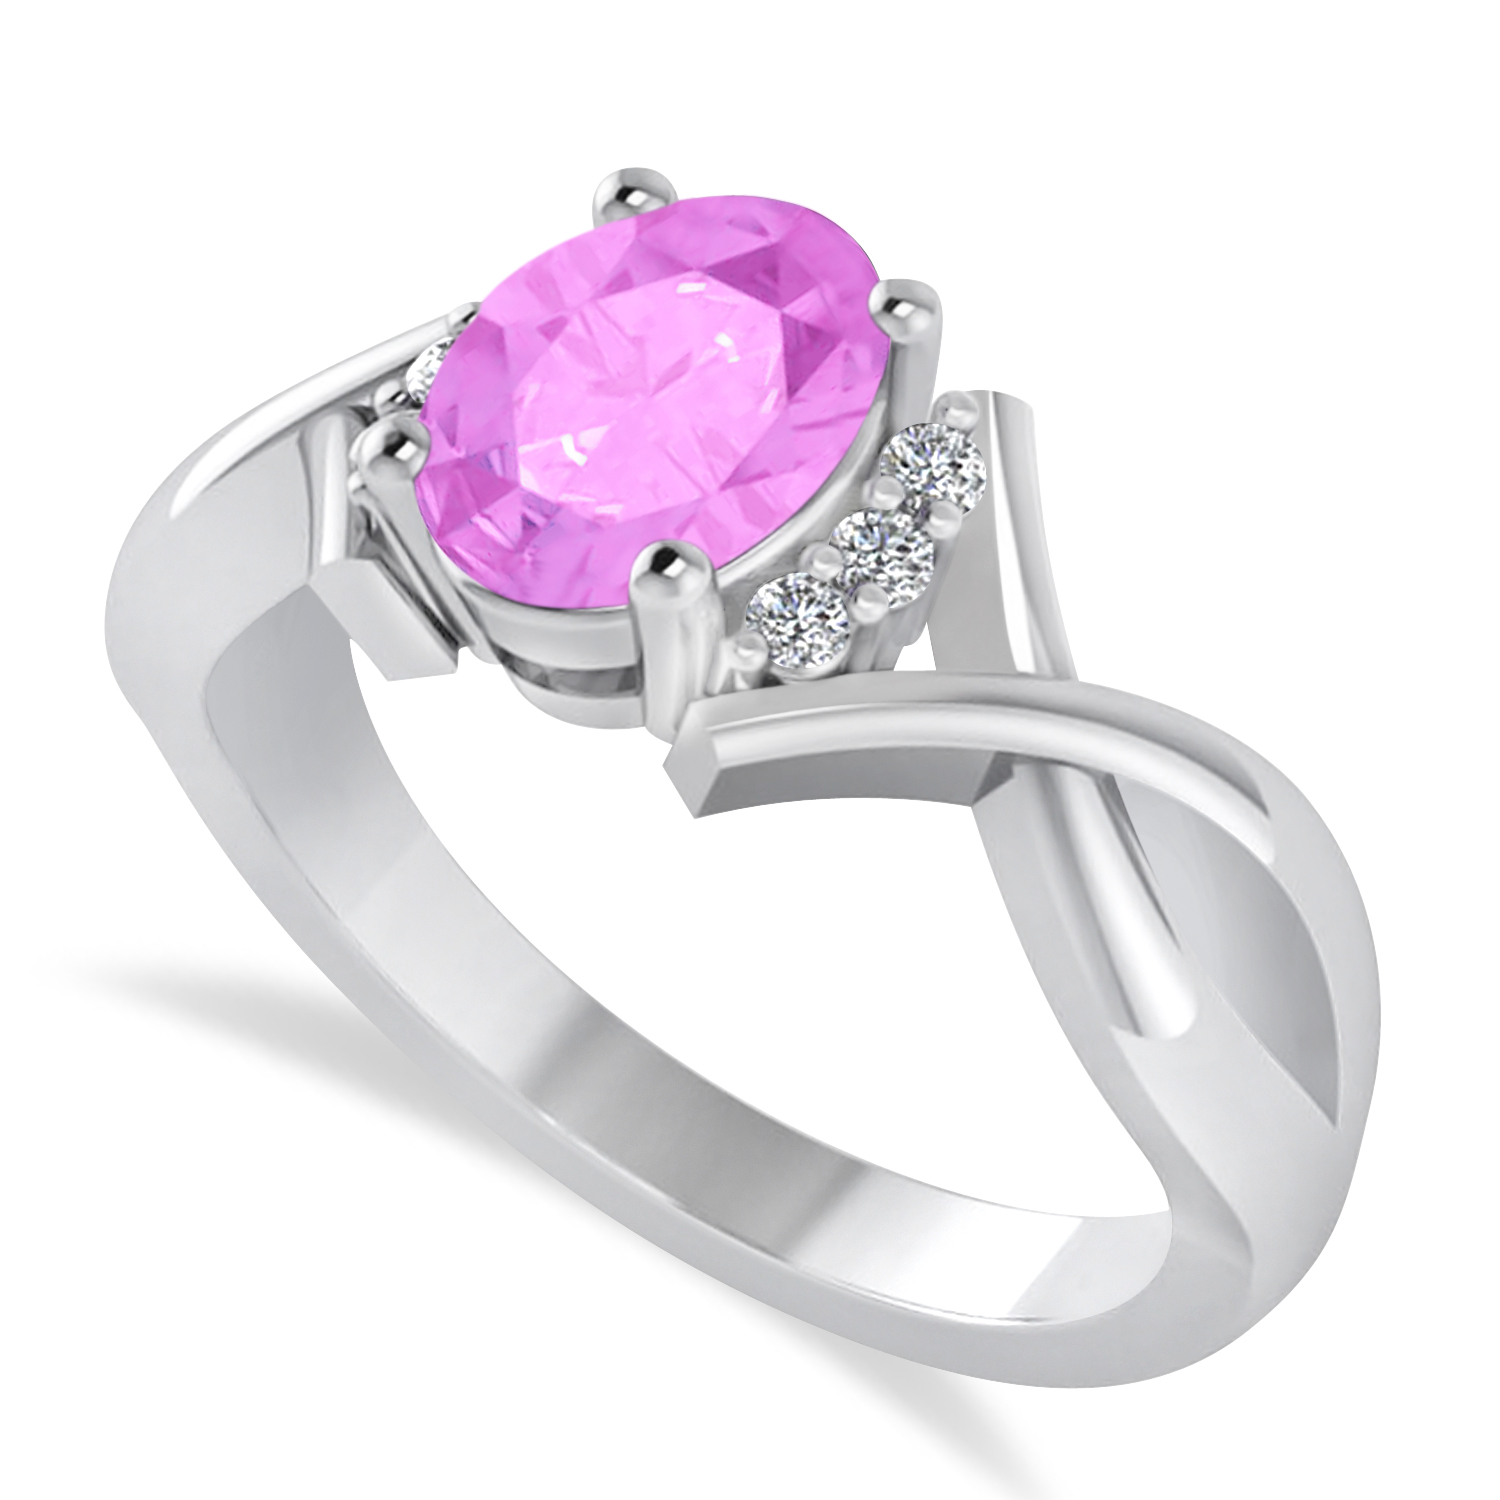 Oval Cut Pink Sapphire & Diamond Engagement Ring With Split Shank 14k White Gold (1.69ct)